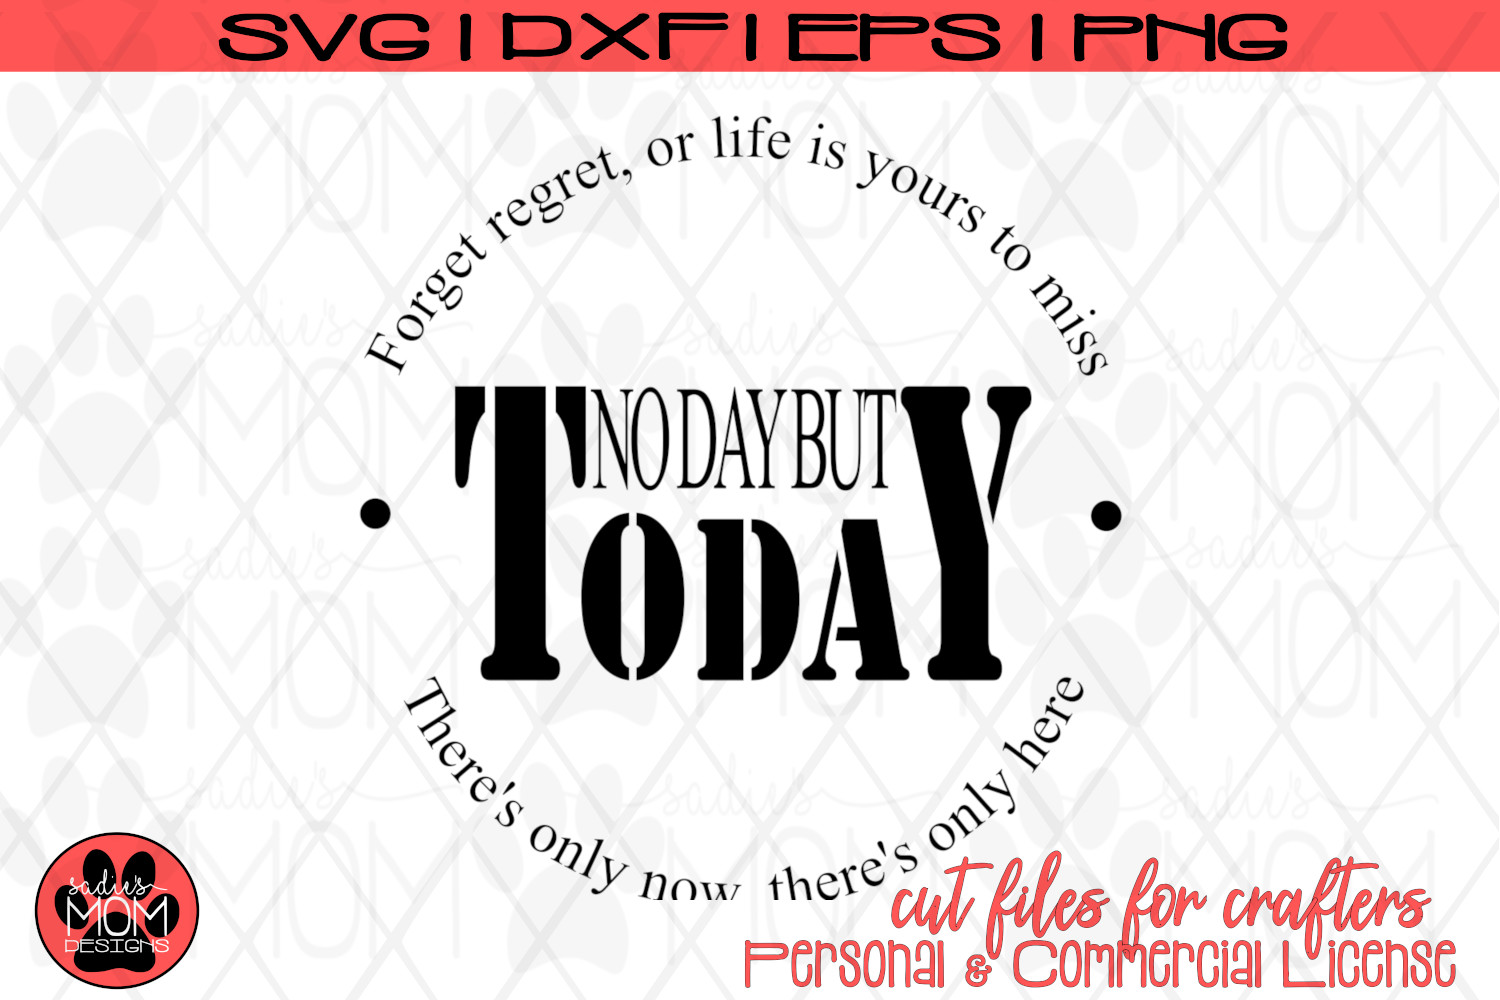 No Day But Today - Forget Regret | Lyric | SVG Cut File example image 2